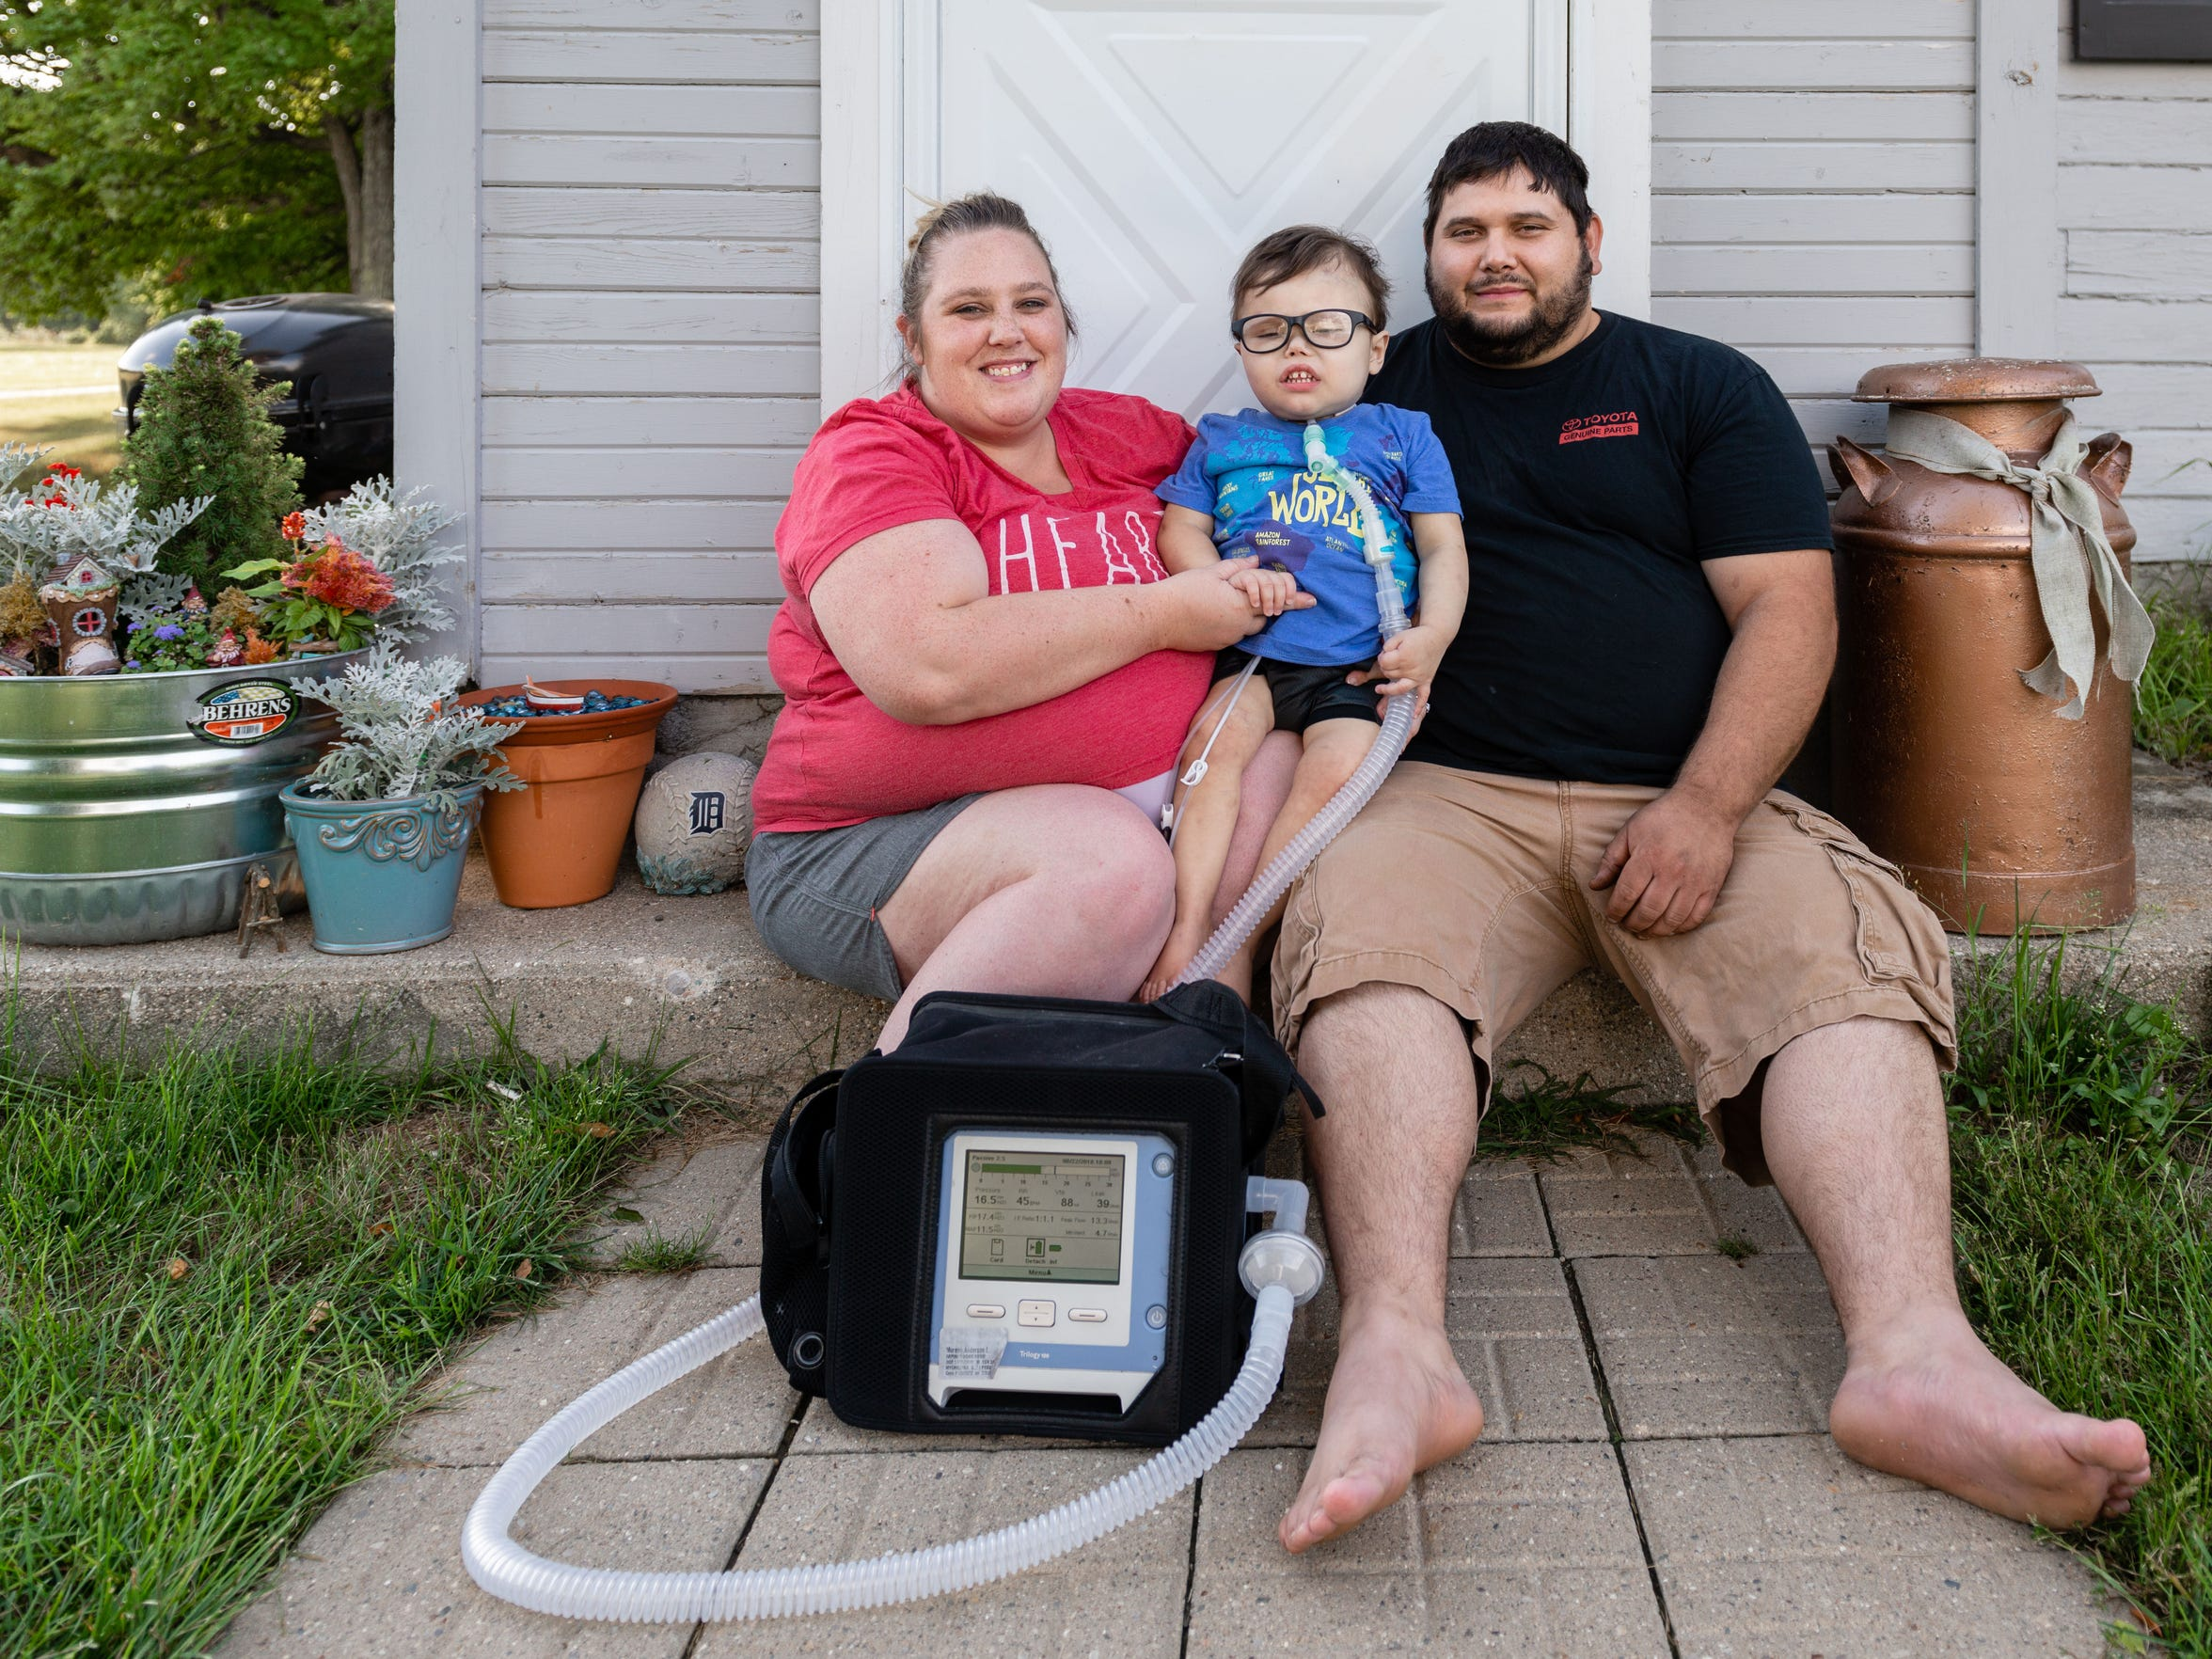 Anderson Moreno uses a portable ventilator because of his impaired lung capacity. He is shown with his parents, Alicia and Andy Moreno.